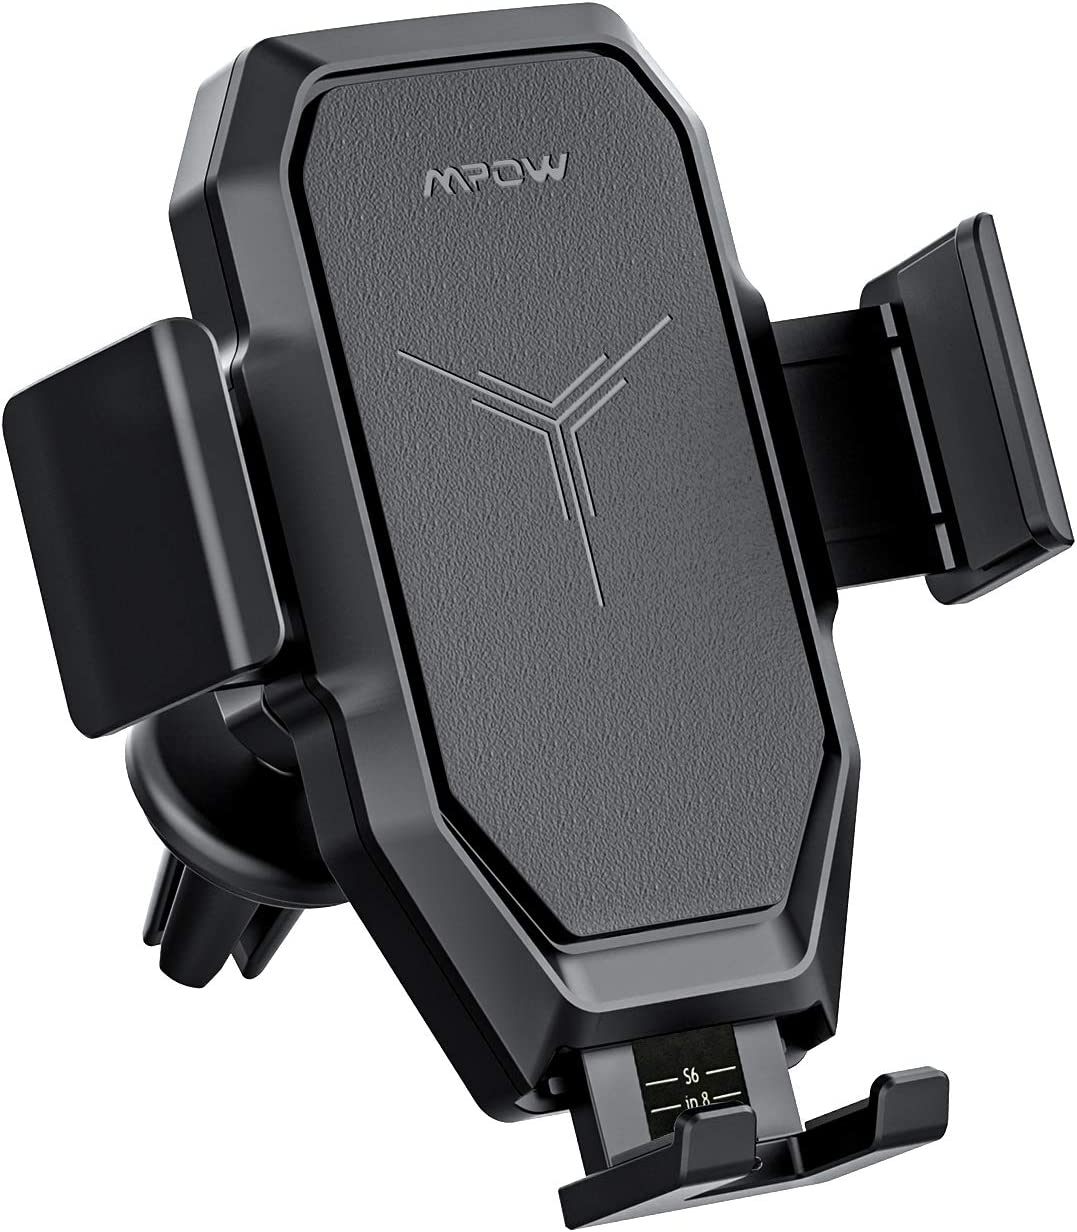 Samsung Galaxy S20 S10+ S9+ S8 Note 9 Mpow Wireless Car Charger Mount Compatible iPhone 11 Pro MAX//XS MAX//XS//XR//X8 Plus Fast Auto Charging Air Vent Phone Holder 10W, 7.5W 5W